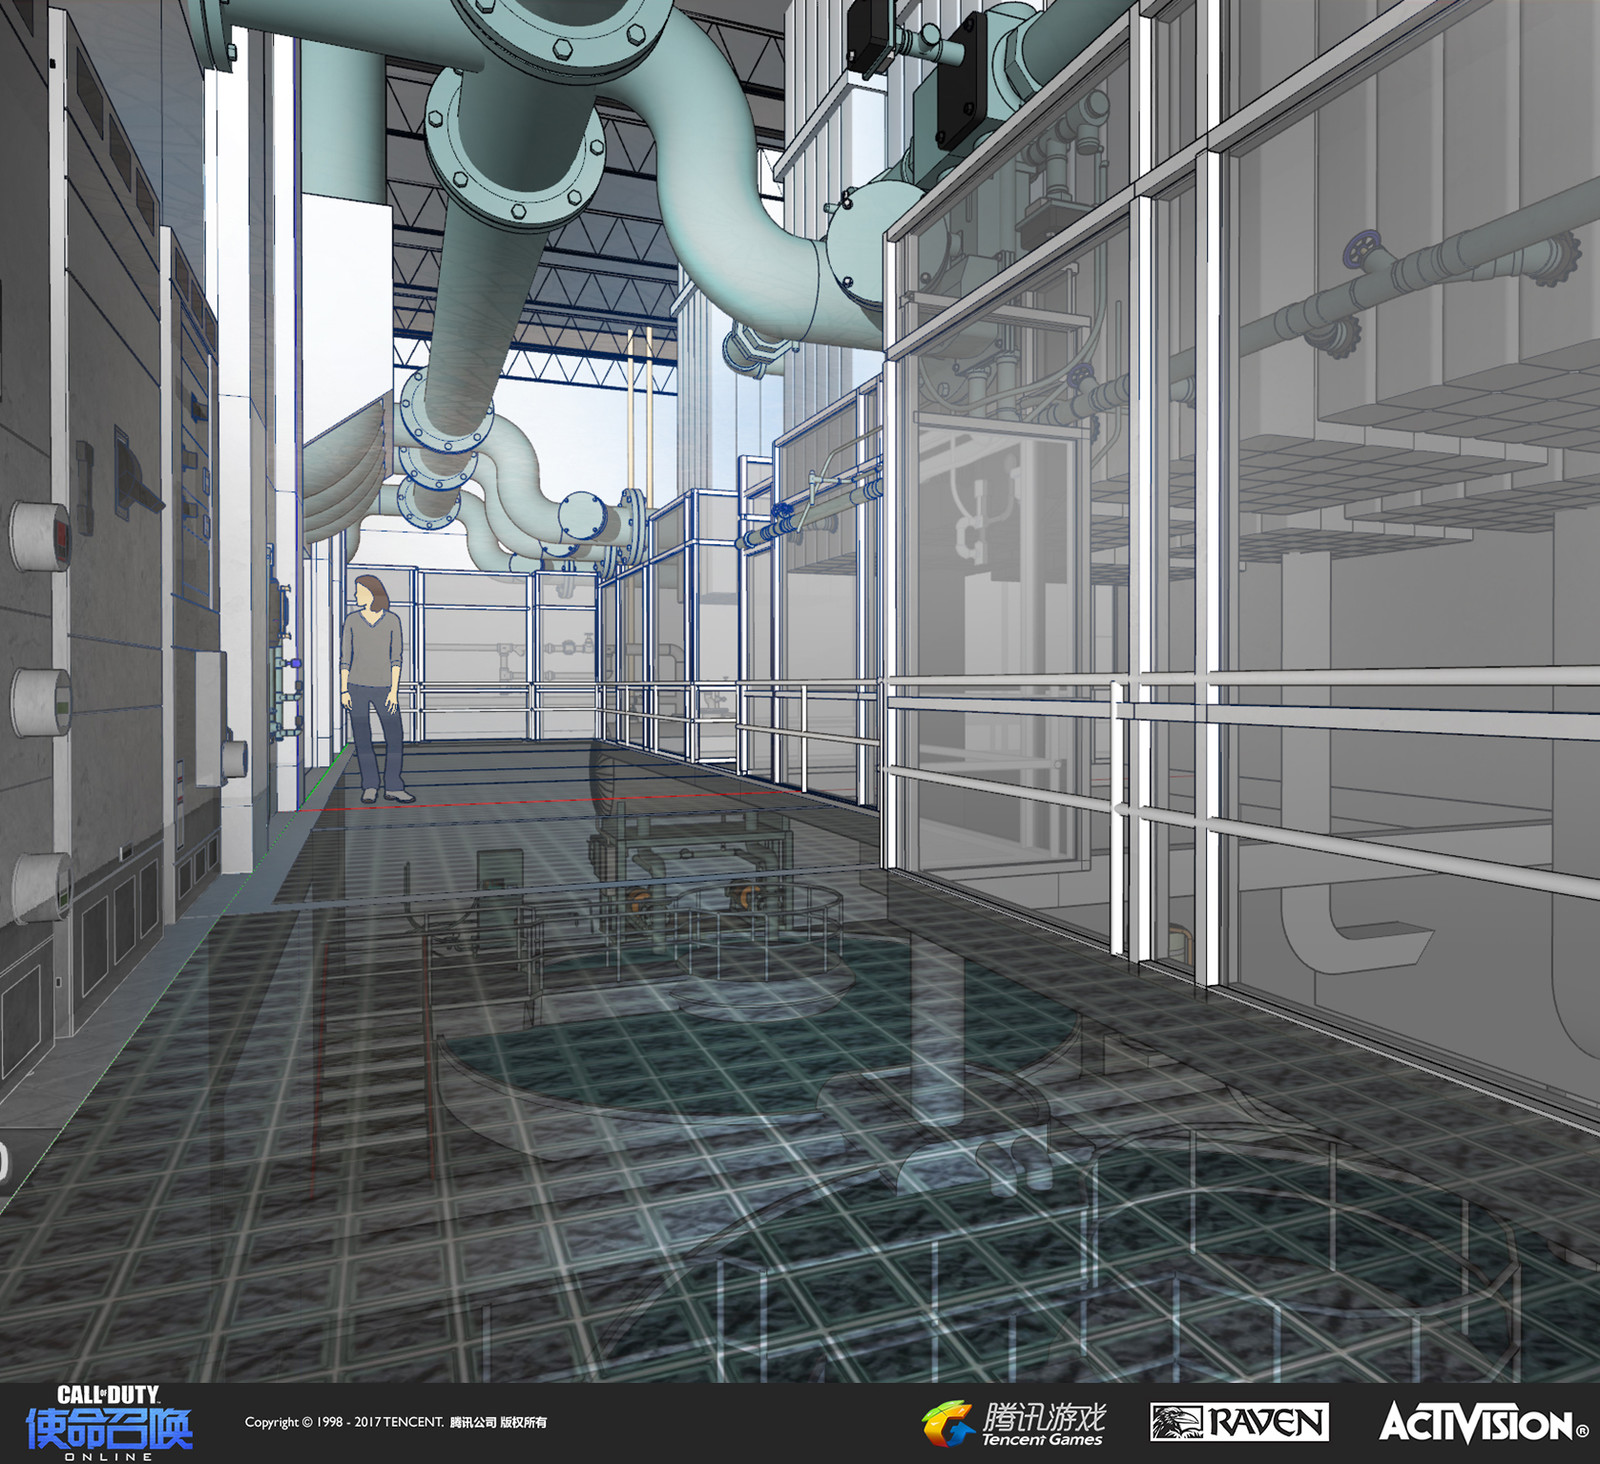 The interior concept art of the water filtration plant done in SketchUp.